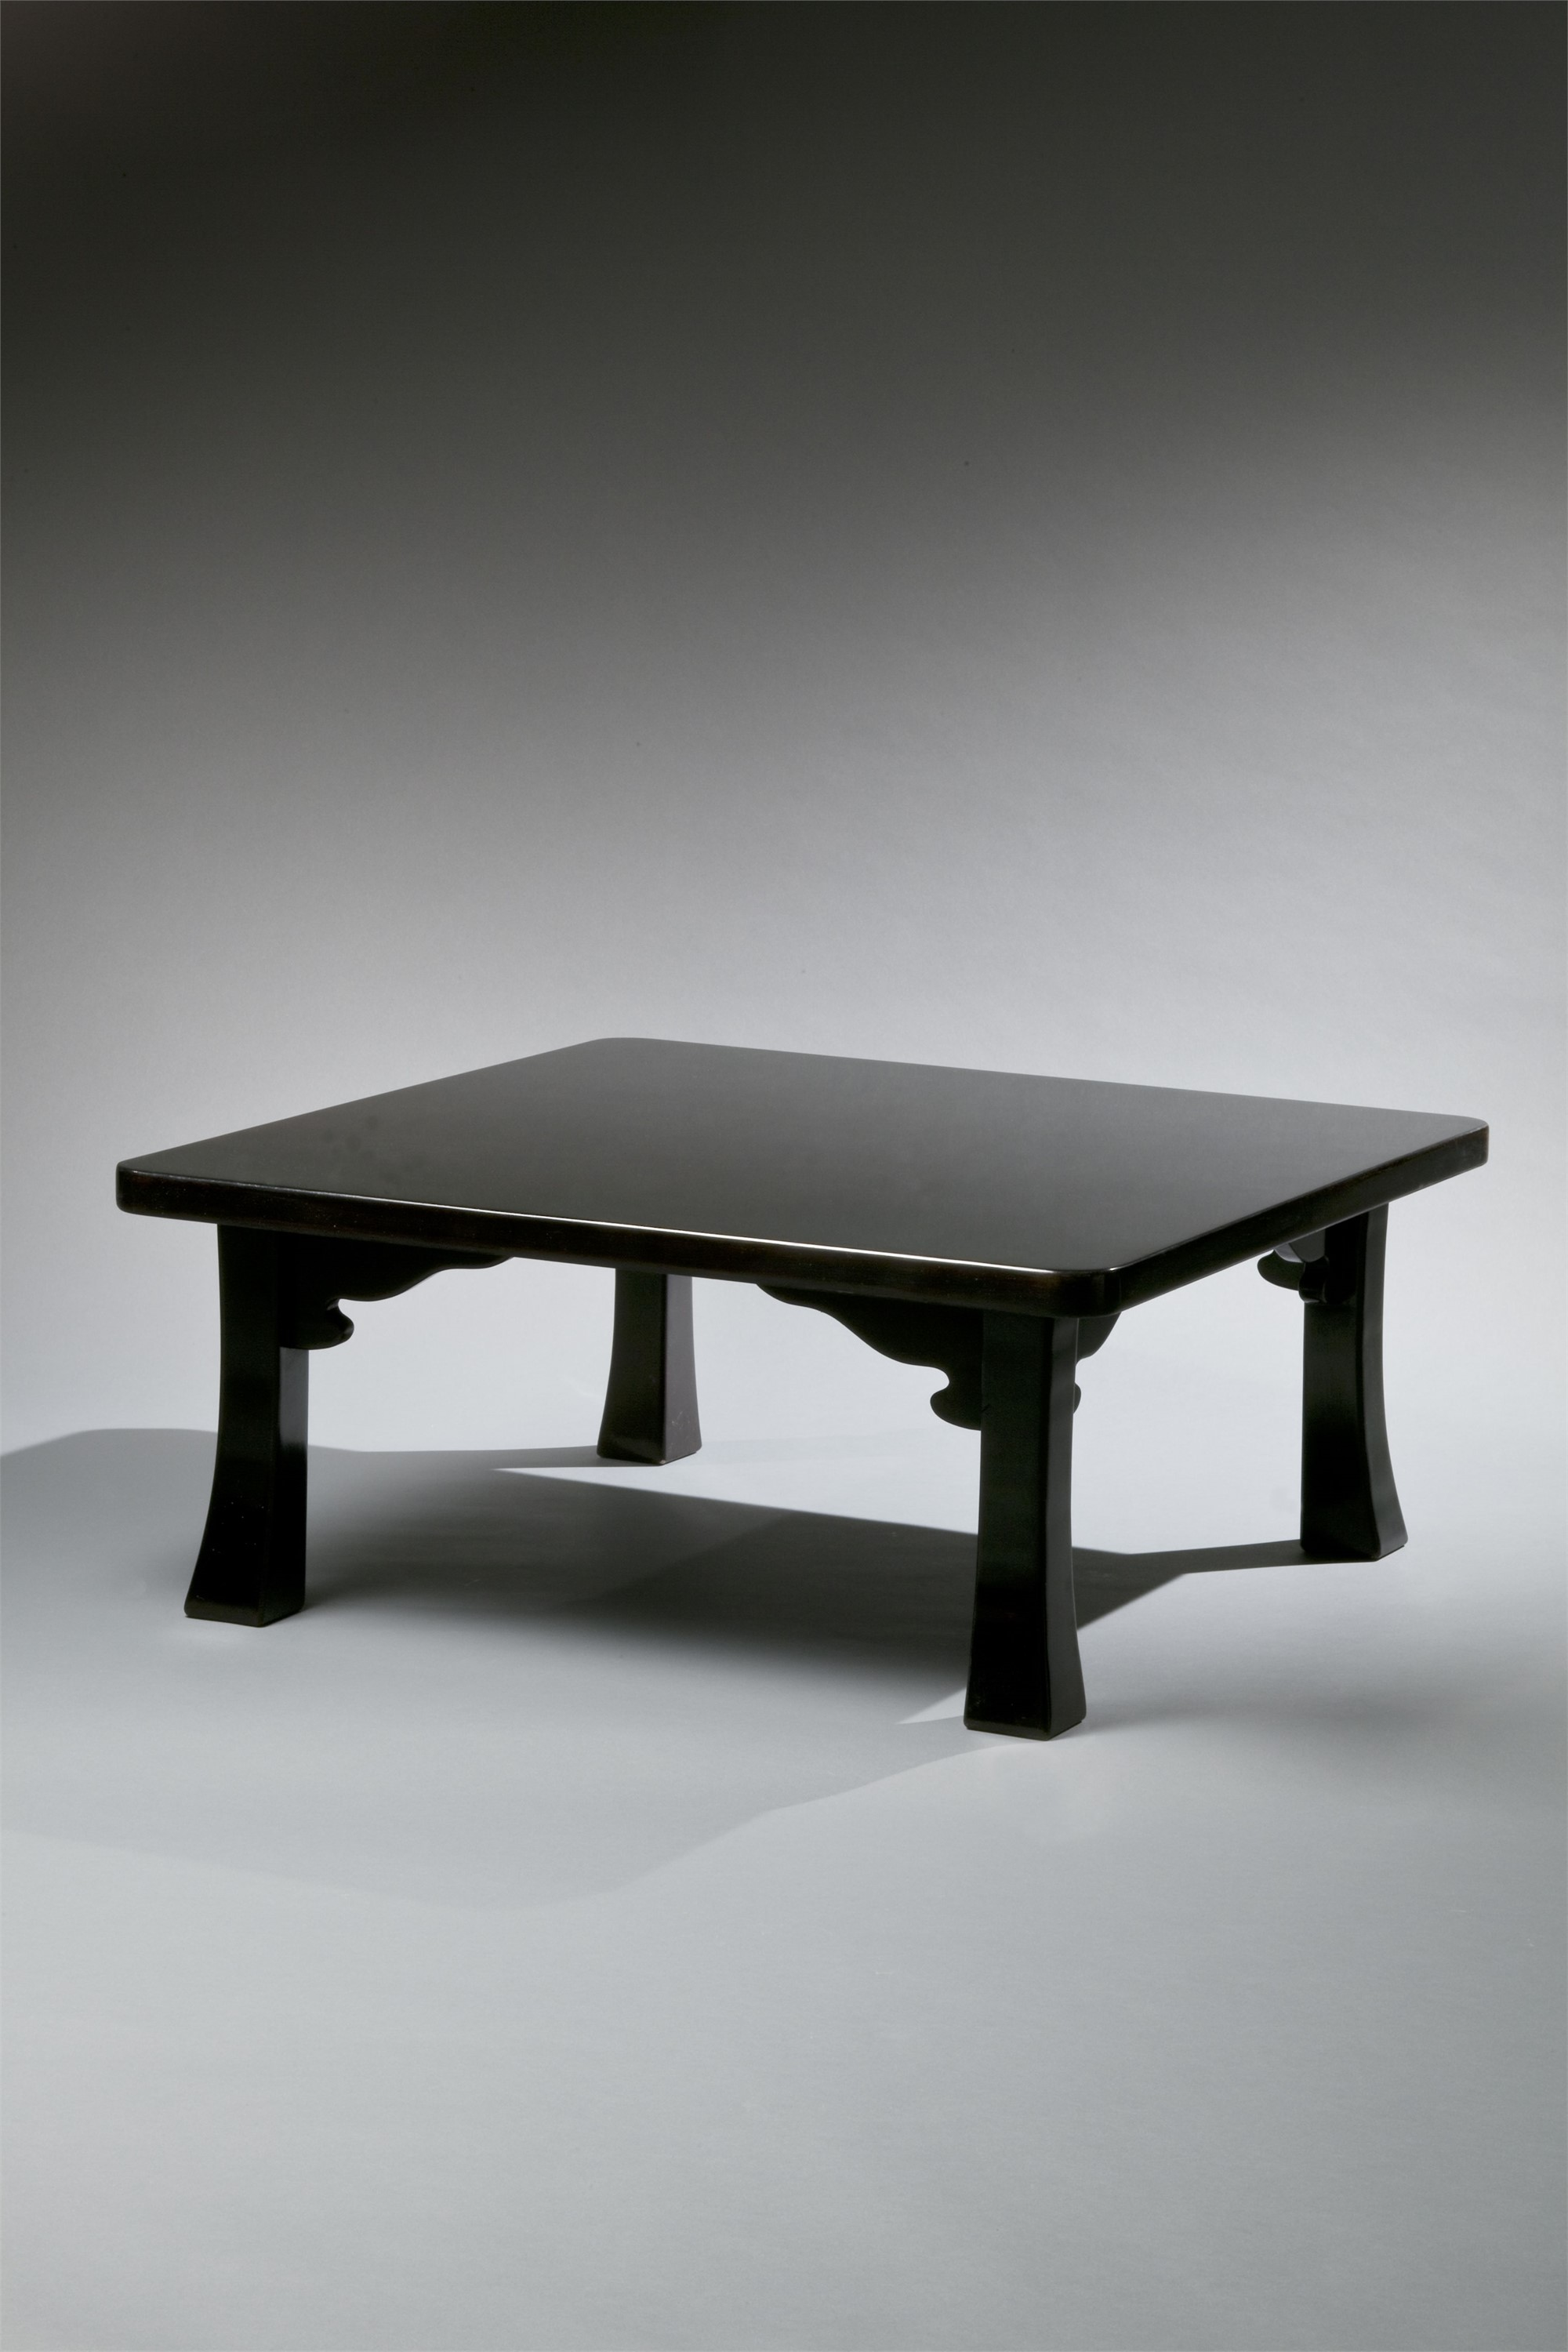 JAPANESE CHABUDAI INSPIRED LACQUER LOW TABLE